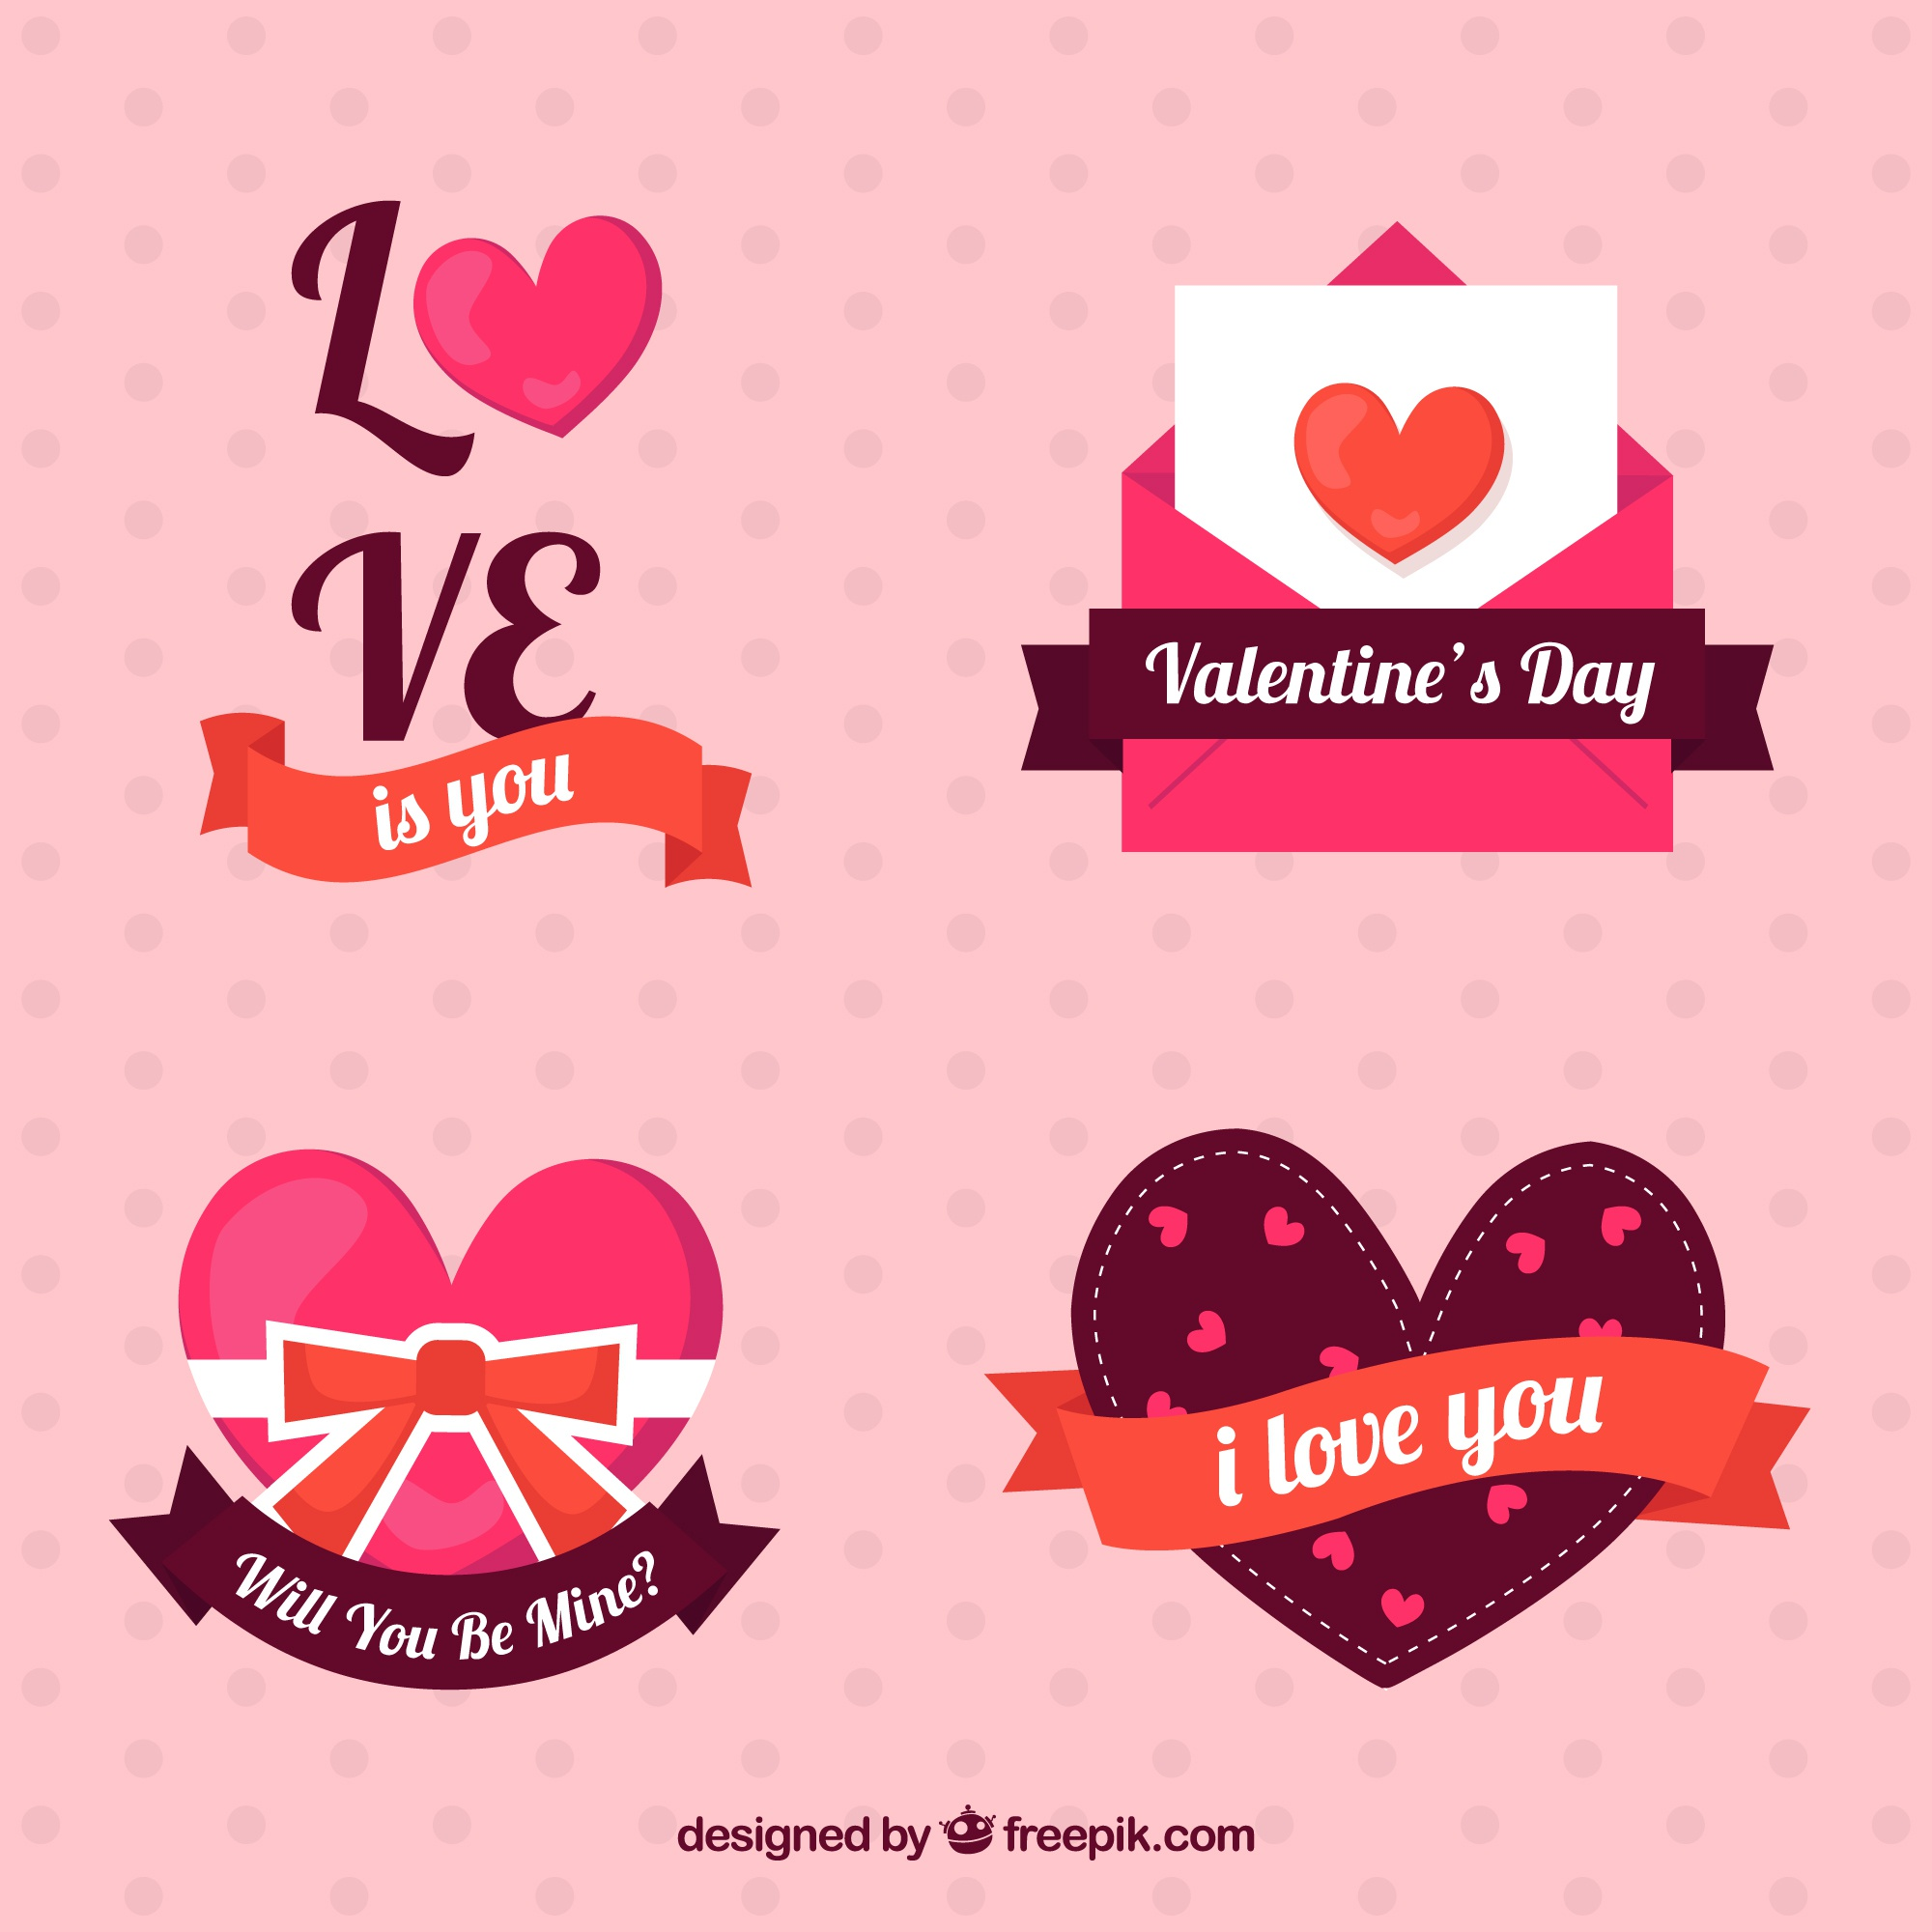 Several valentines stickers with decorative ribbons